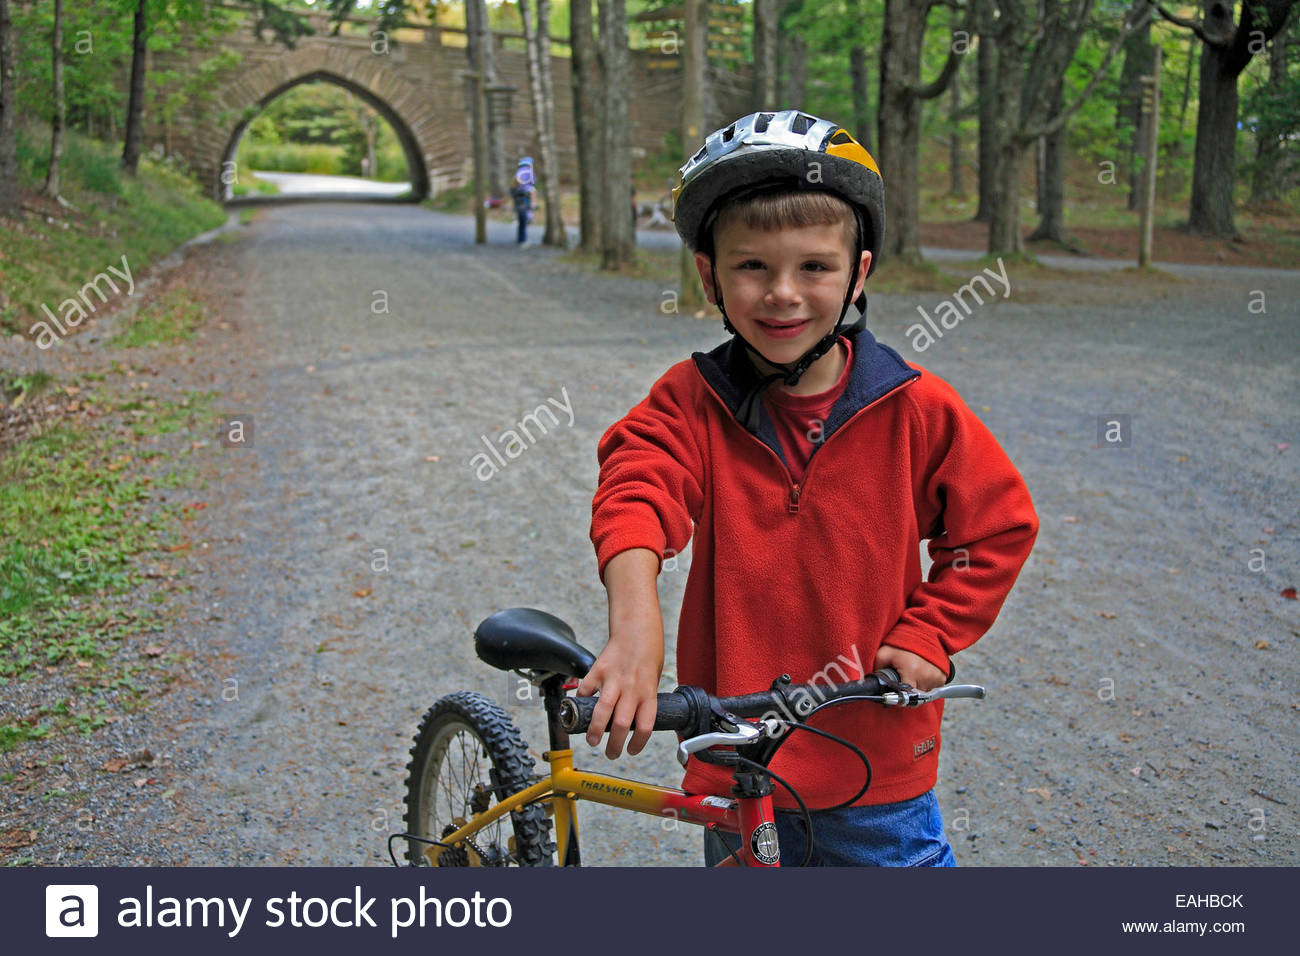 Bike Carriage Stock Photos Amp Bike Carriage Stock Images